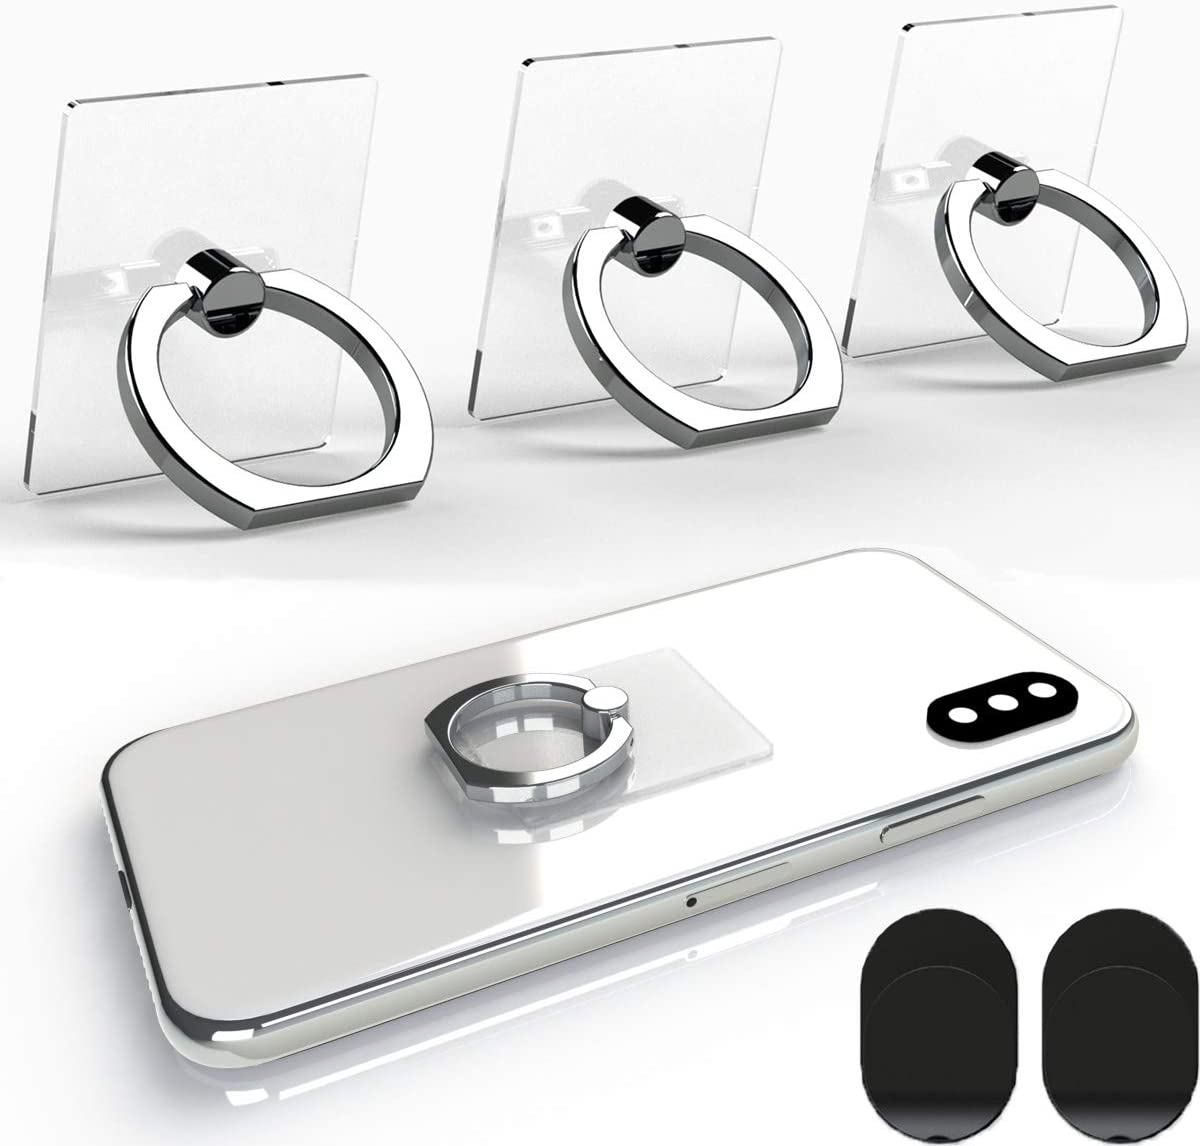 Attom Tech Transparent Phone Ring Holder Grip 360 Degree Free Rotation, Clear Cell Phone Finger Ring Kick-Stand for - for iPhone X 8 7 Plus 6S 6 5s 5 SE, Galaxy S9 S8 S7 S6 Edge, Note 8 5 4(Silver)